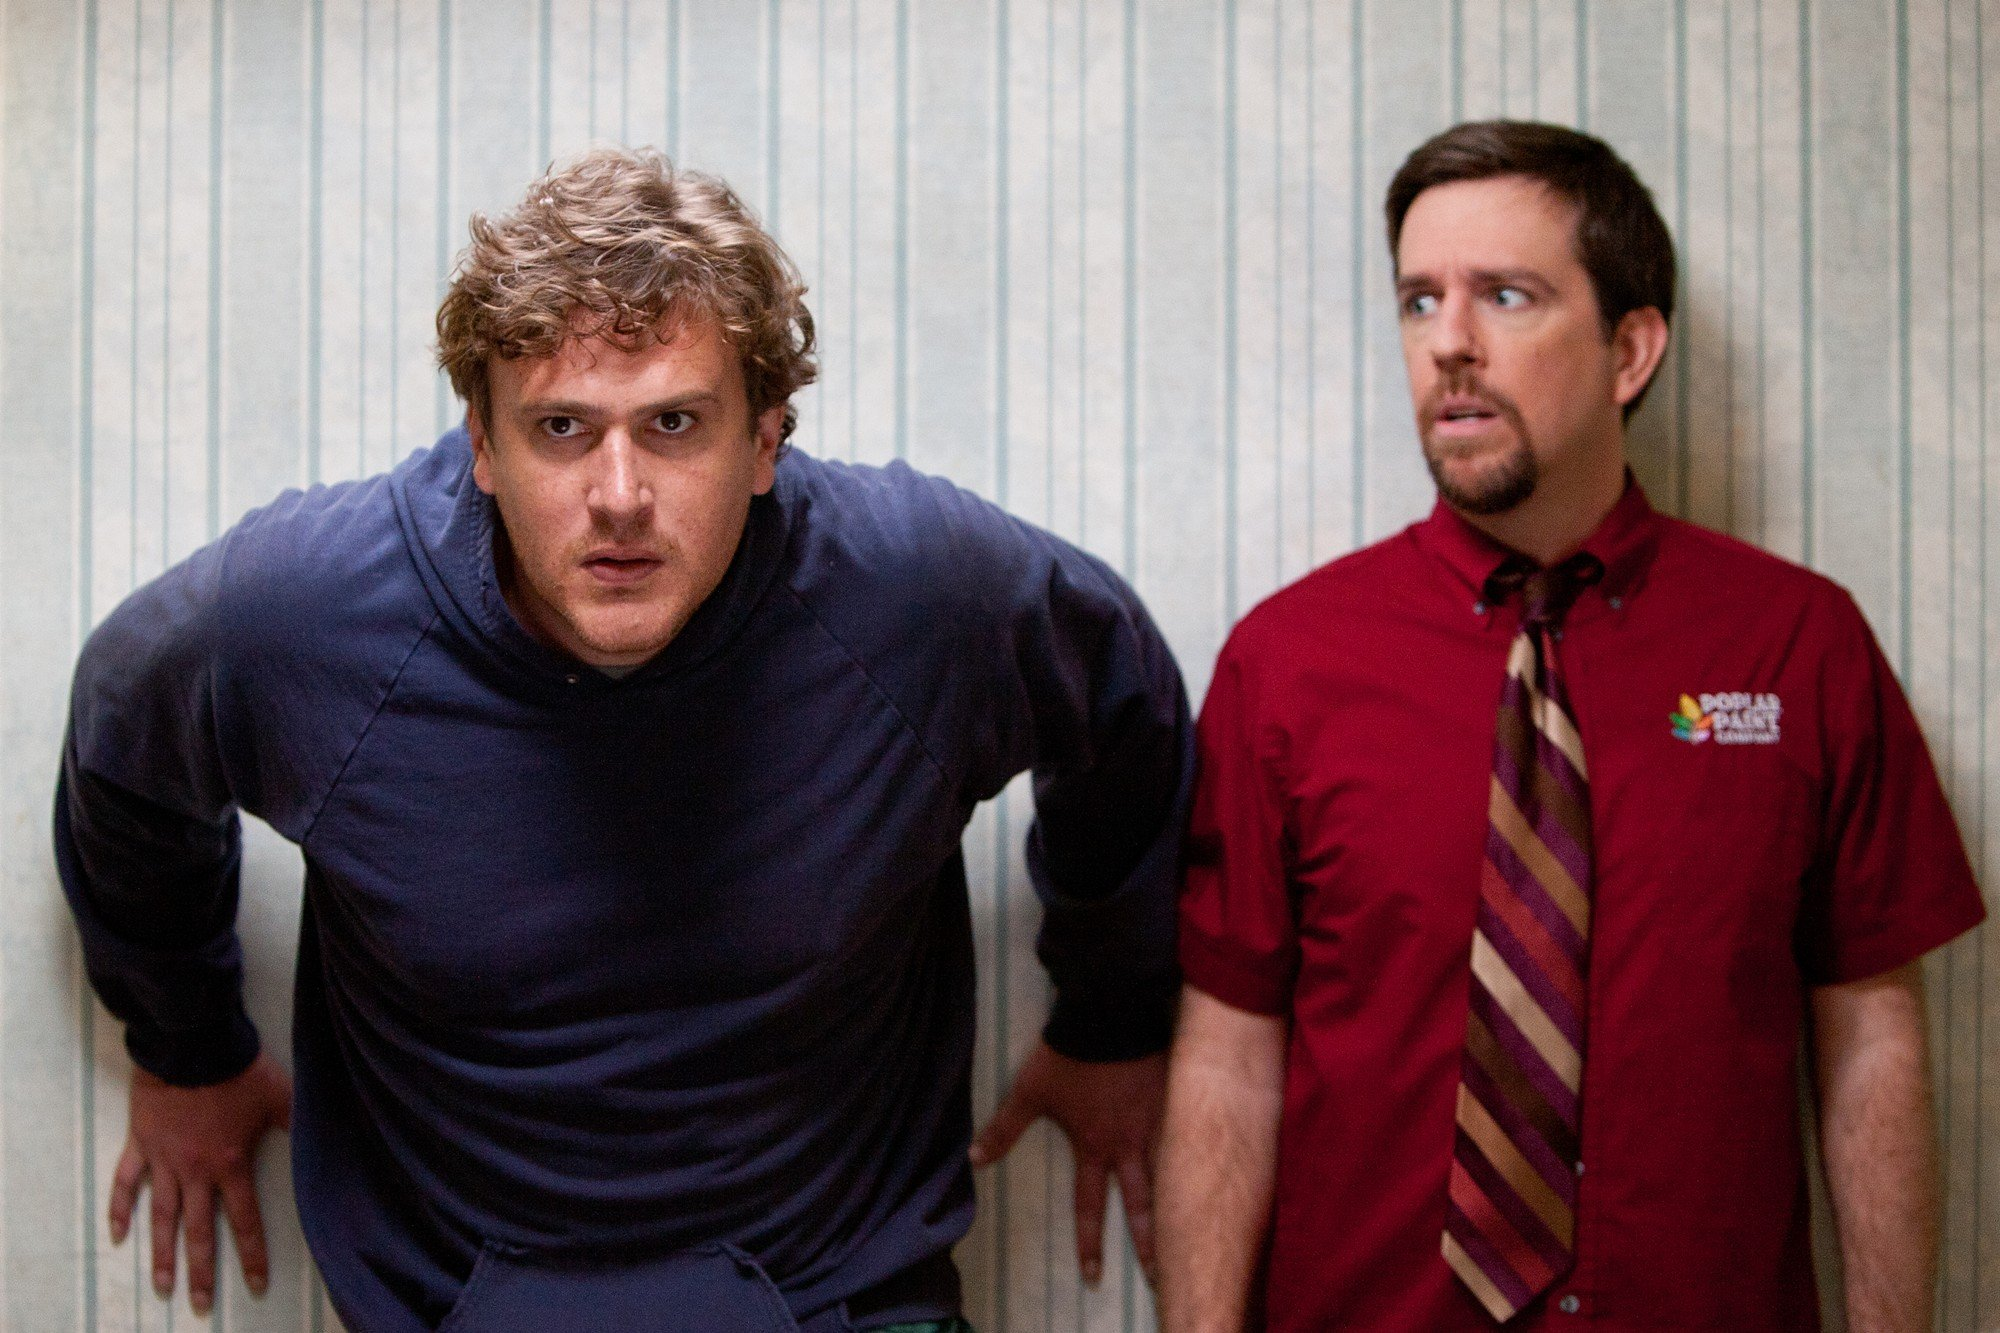 Jason Segel and Ed Helms Solve Family Problems in First 'Jeff Who Lives at Home' Trailer